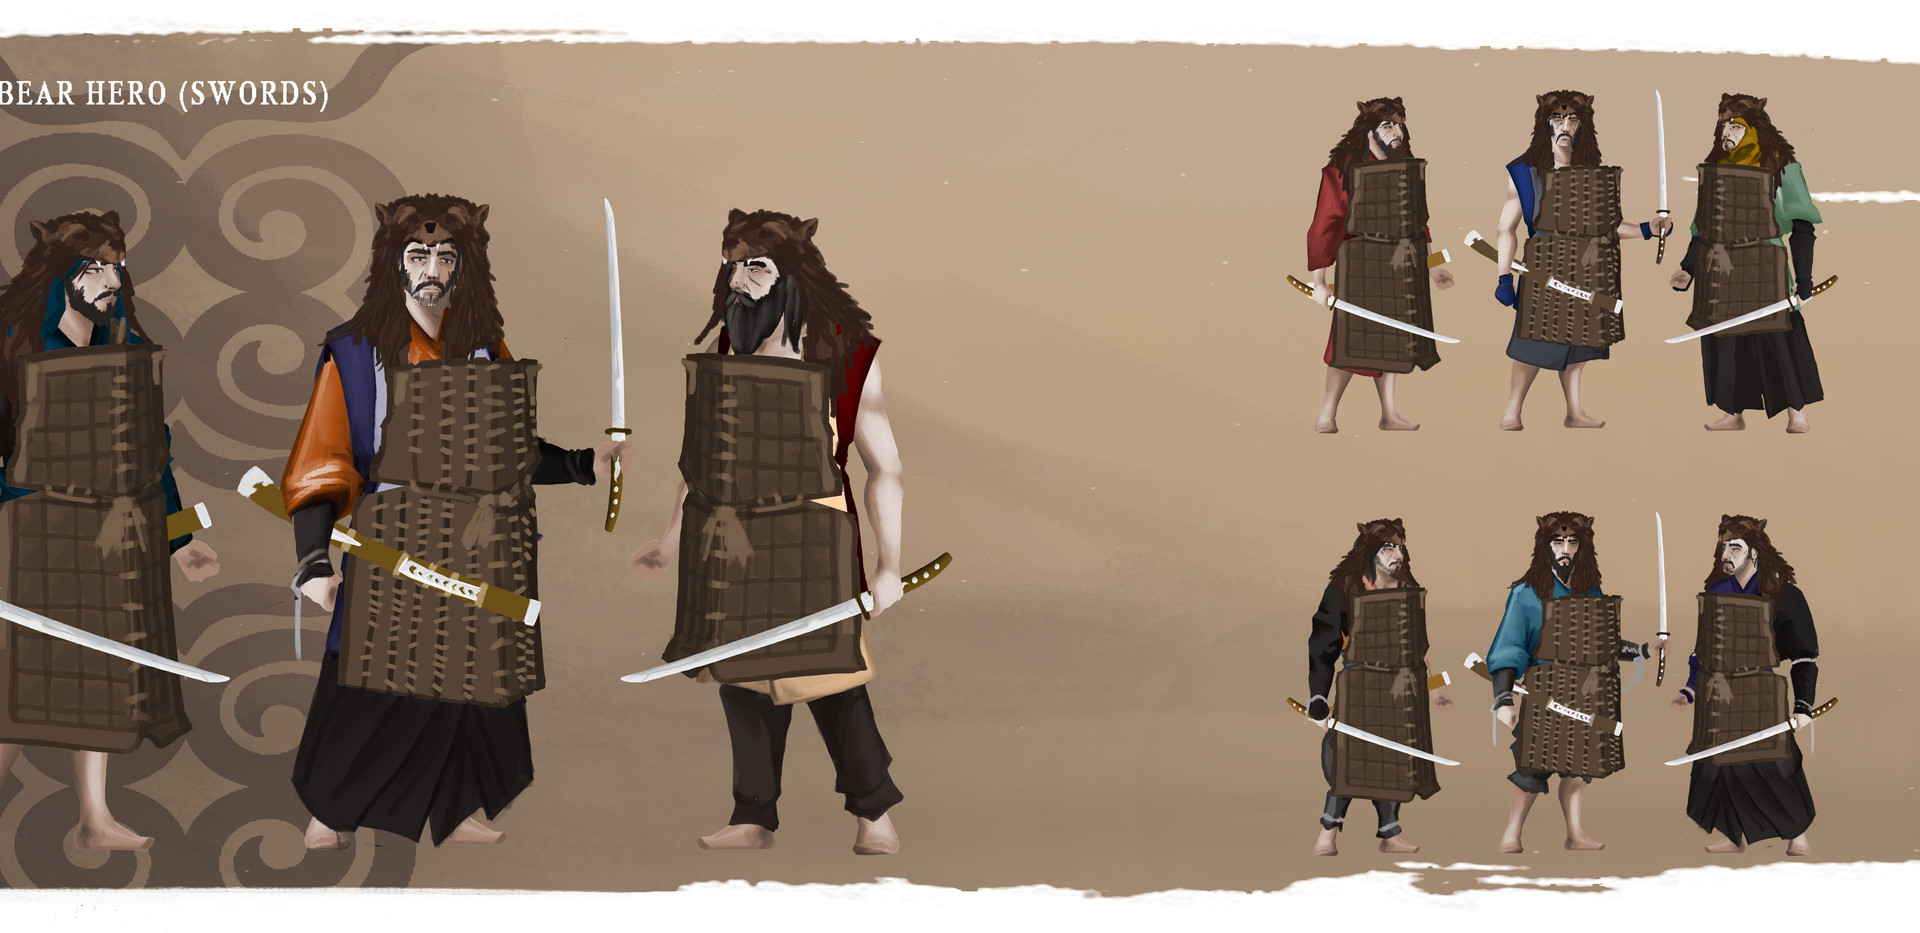 AINU Bear Hero (swords)